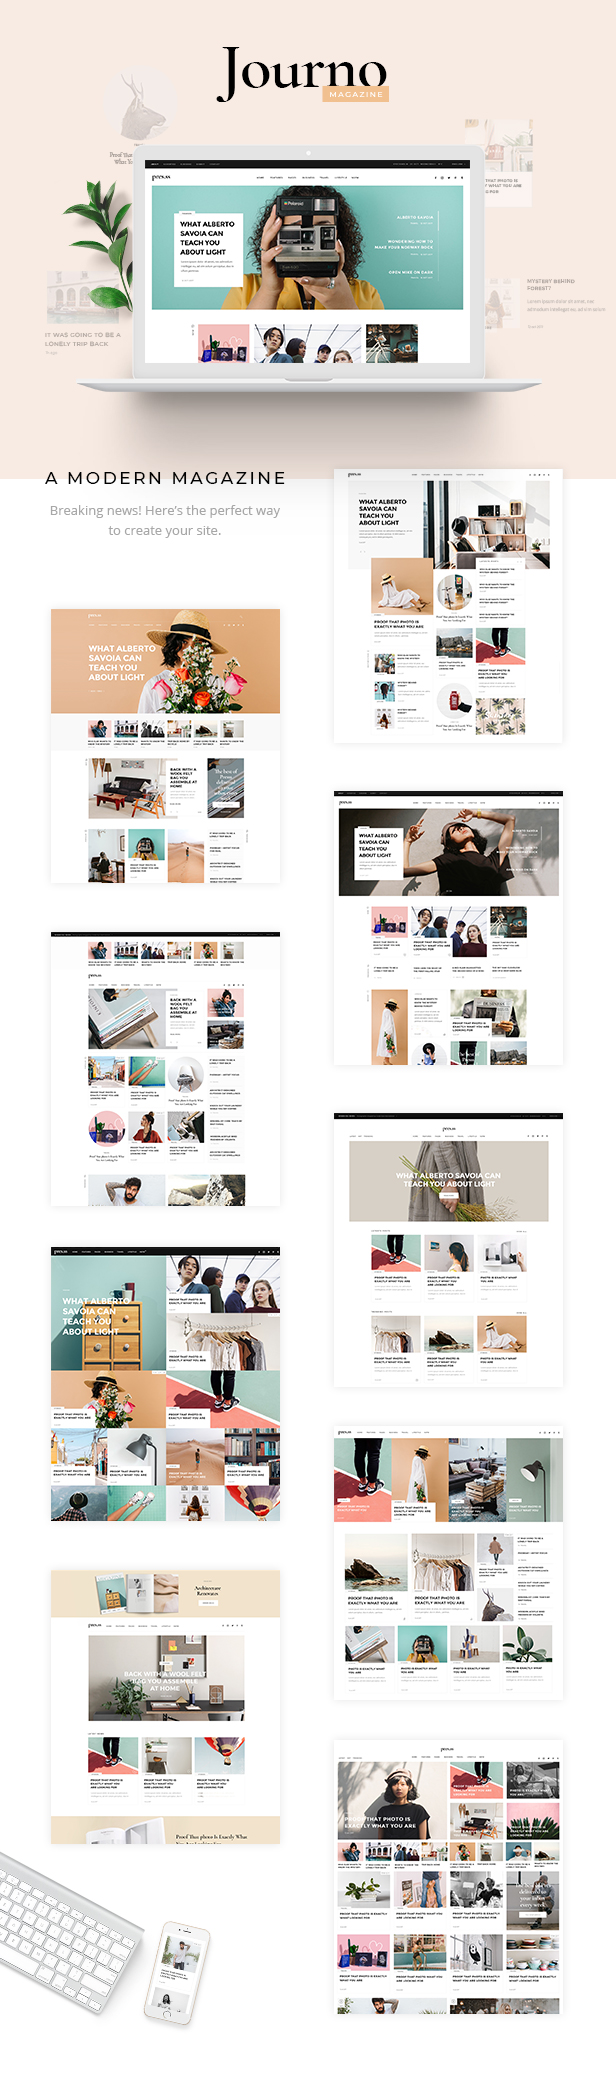 Journo - Creative Magazine & Blog Theme - 1